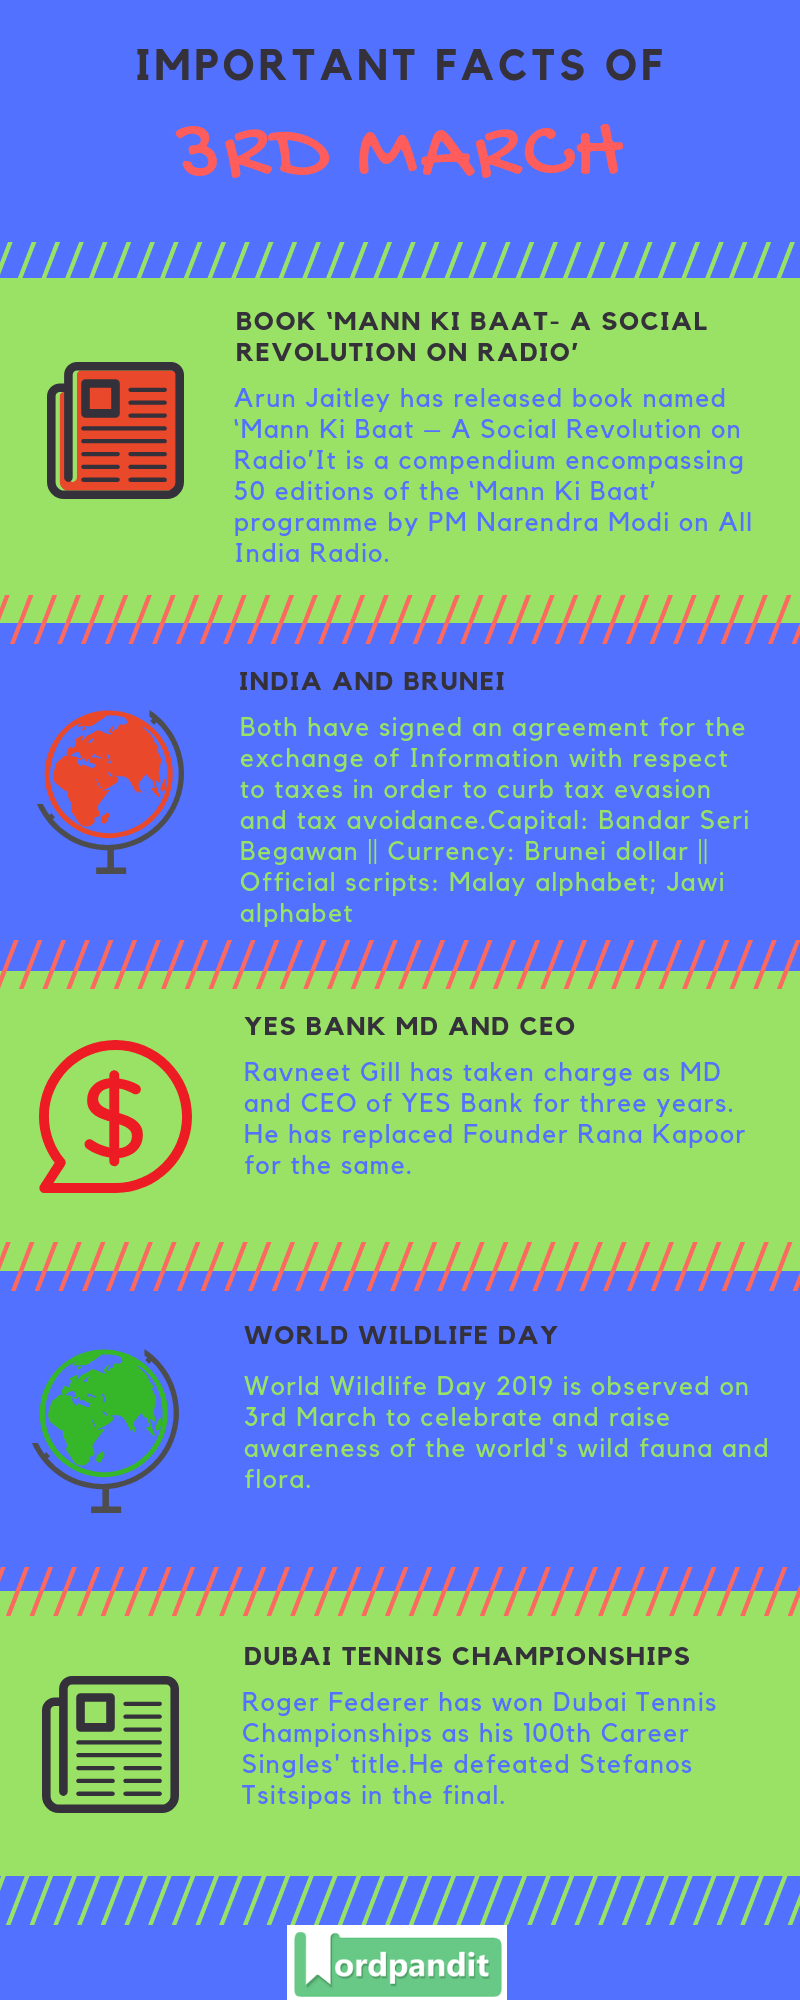 Daily Current Affairs 3 March 2019 Current Affairs Quiz 3 March 2019 Current Affairs Infographic